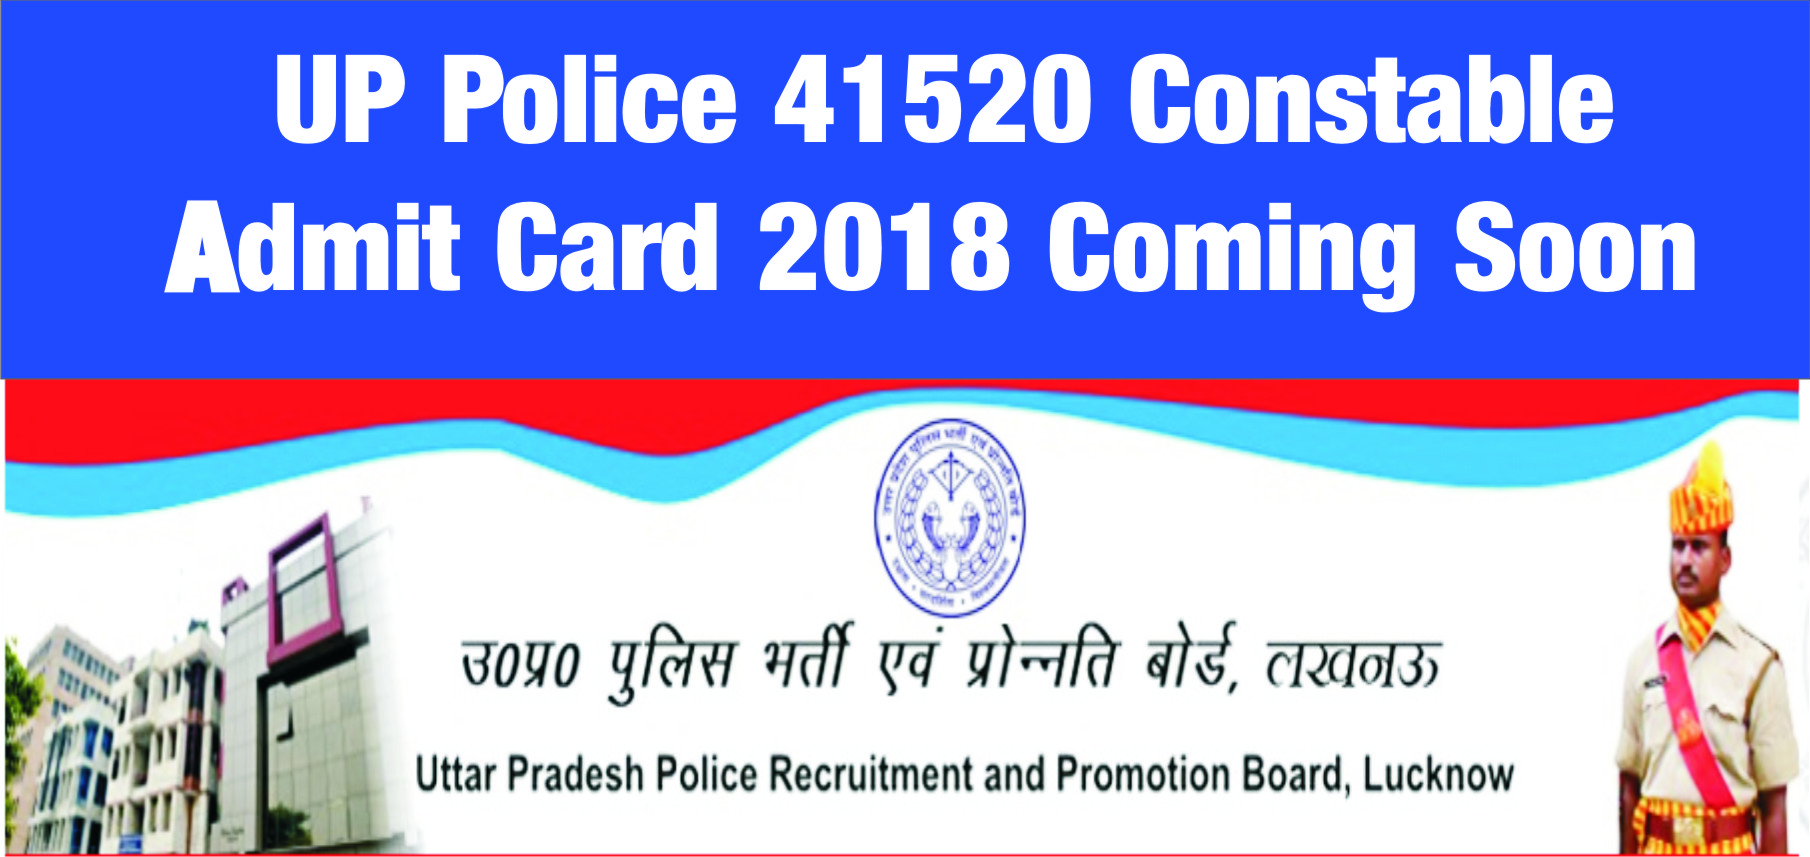 UP Police 41520 Constable Admit Card 2018 Coming Soon